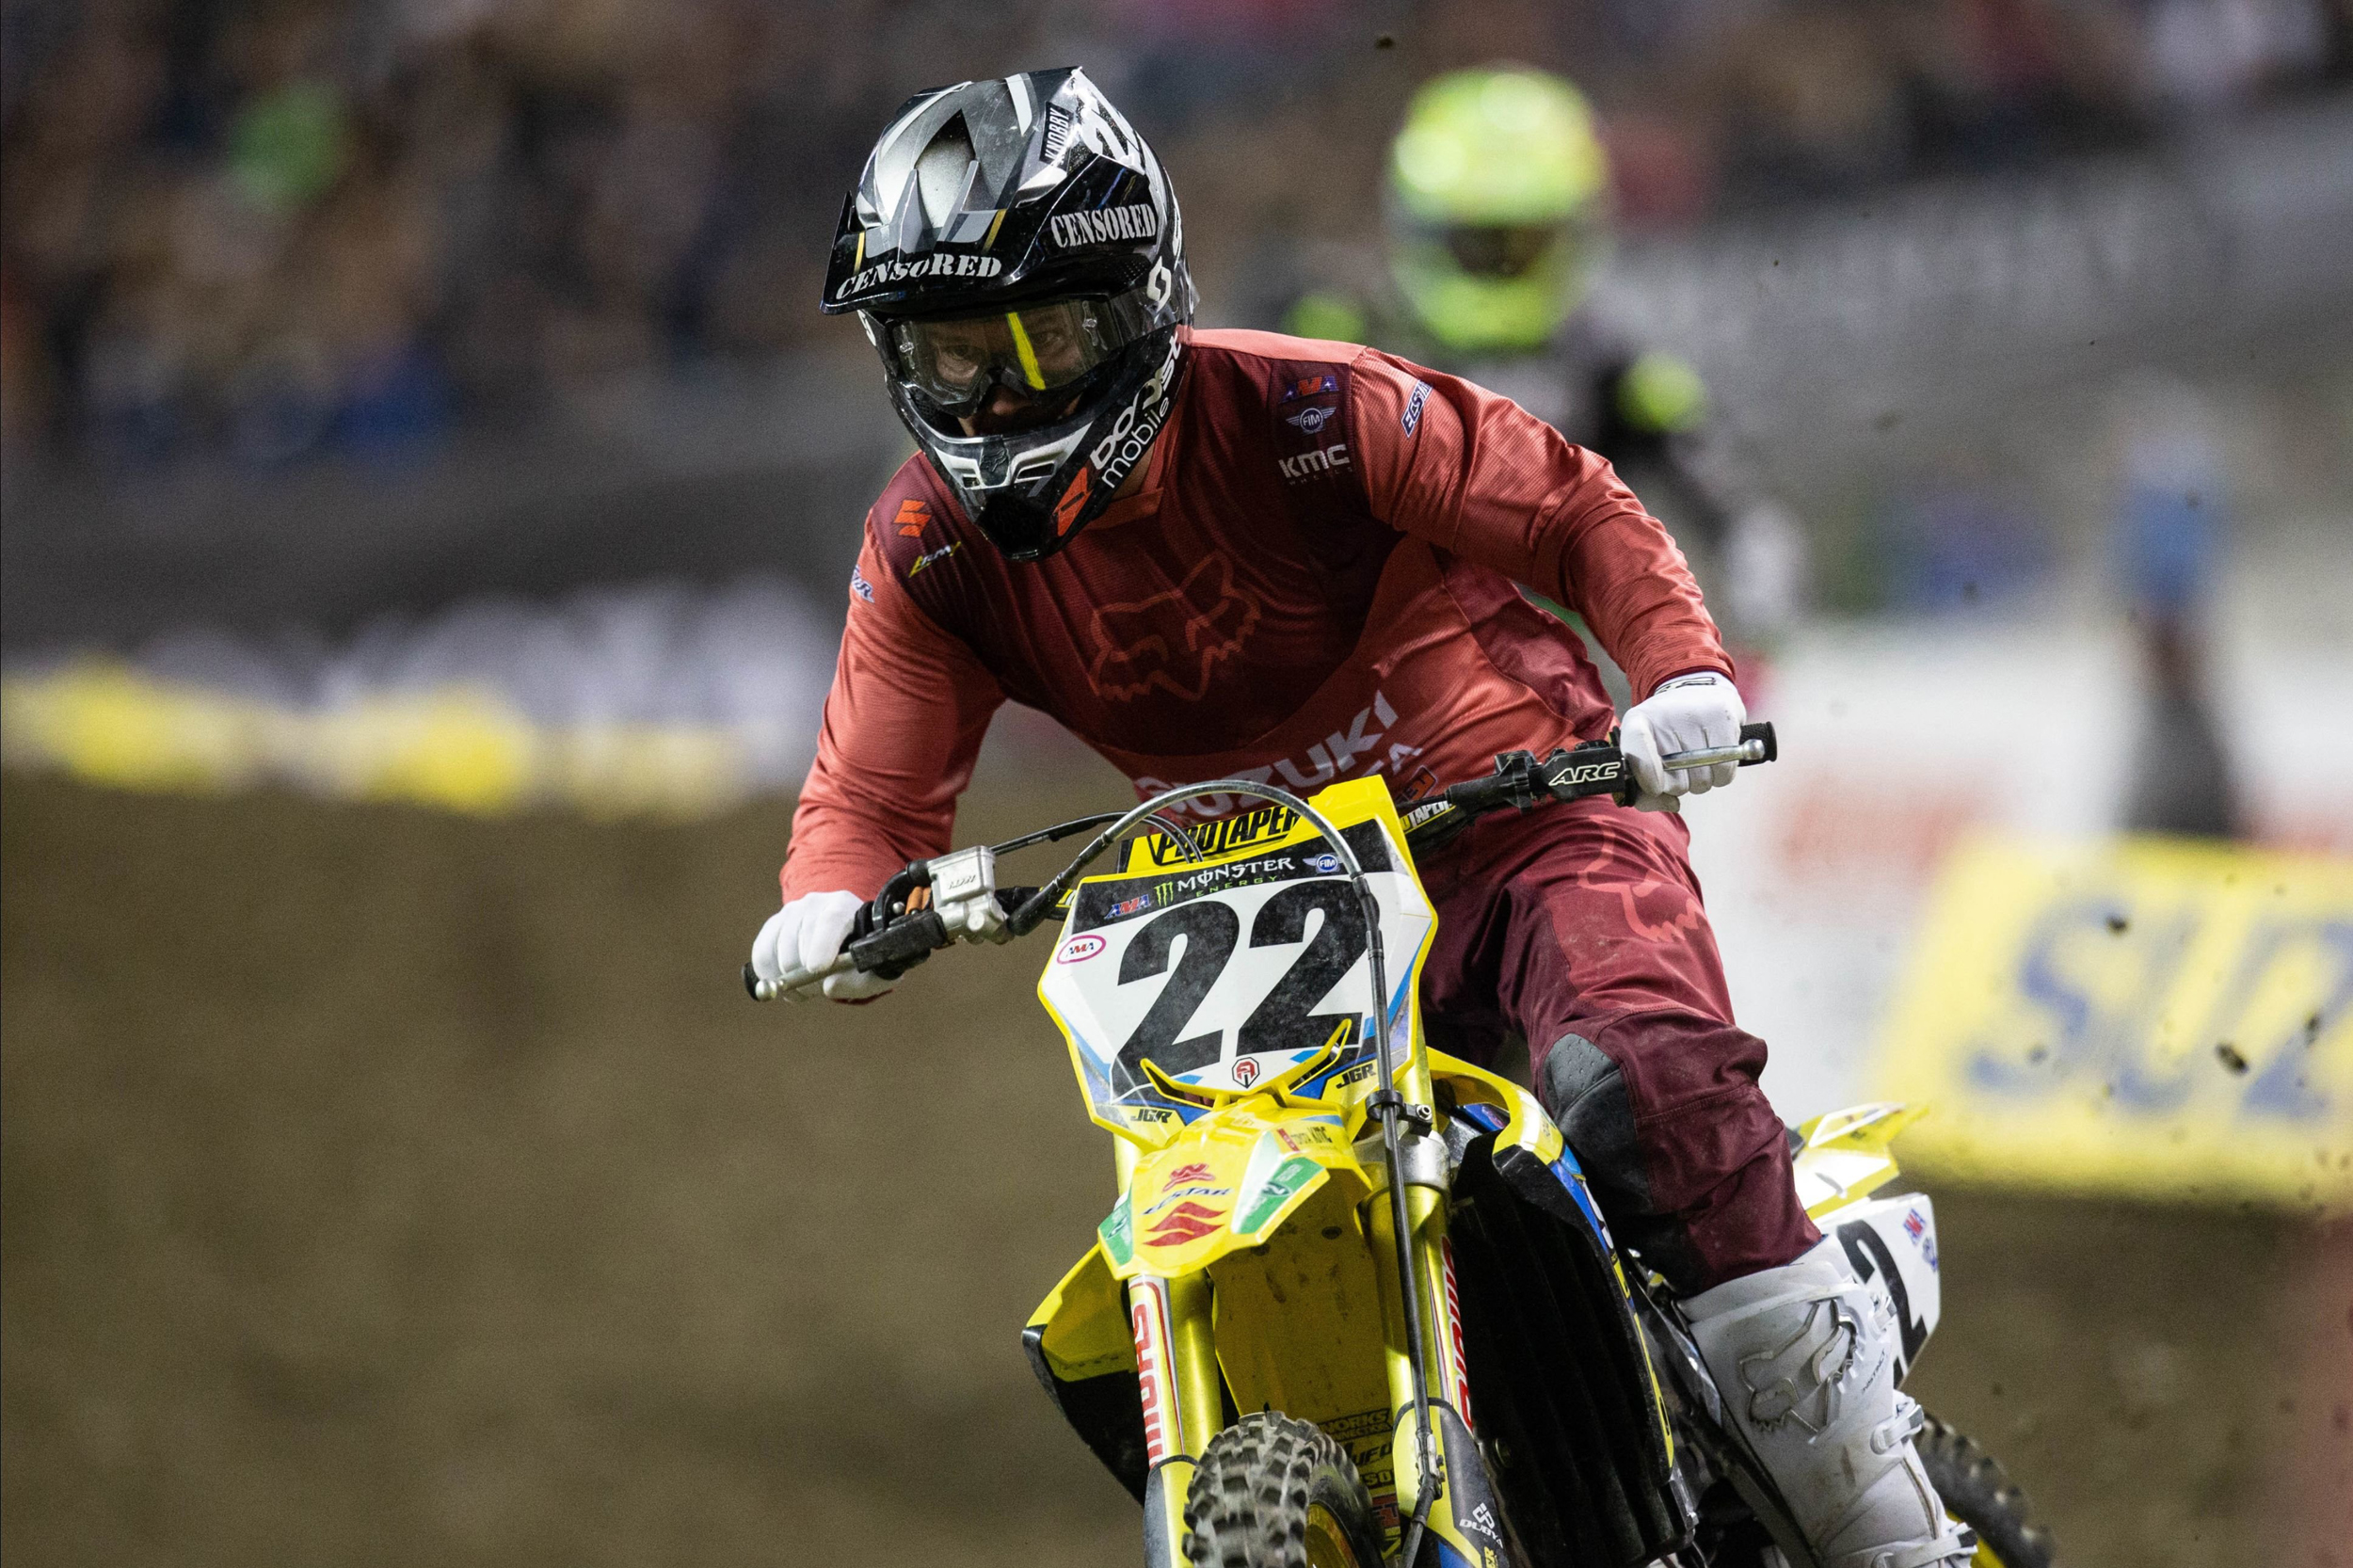 Chad Reed (#22) will put his Supercross career on-hold following an injury in Seattle